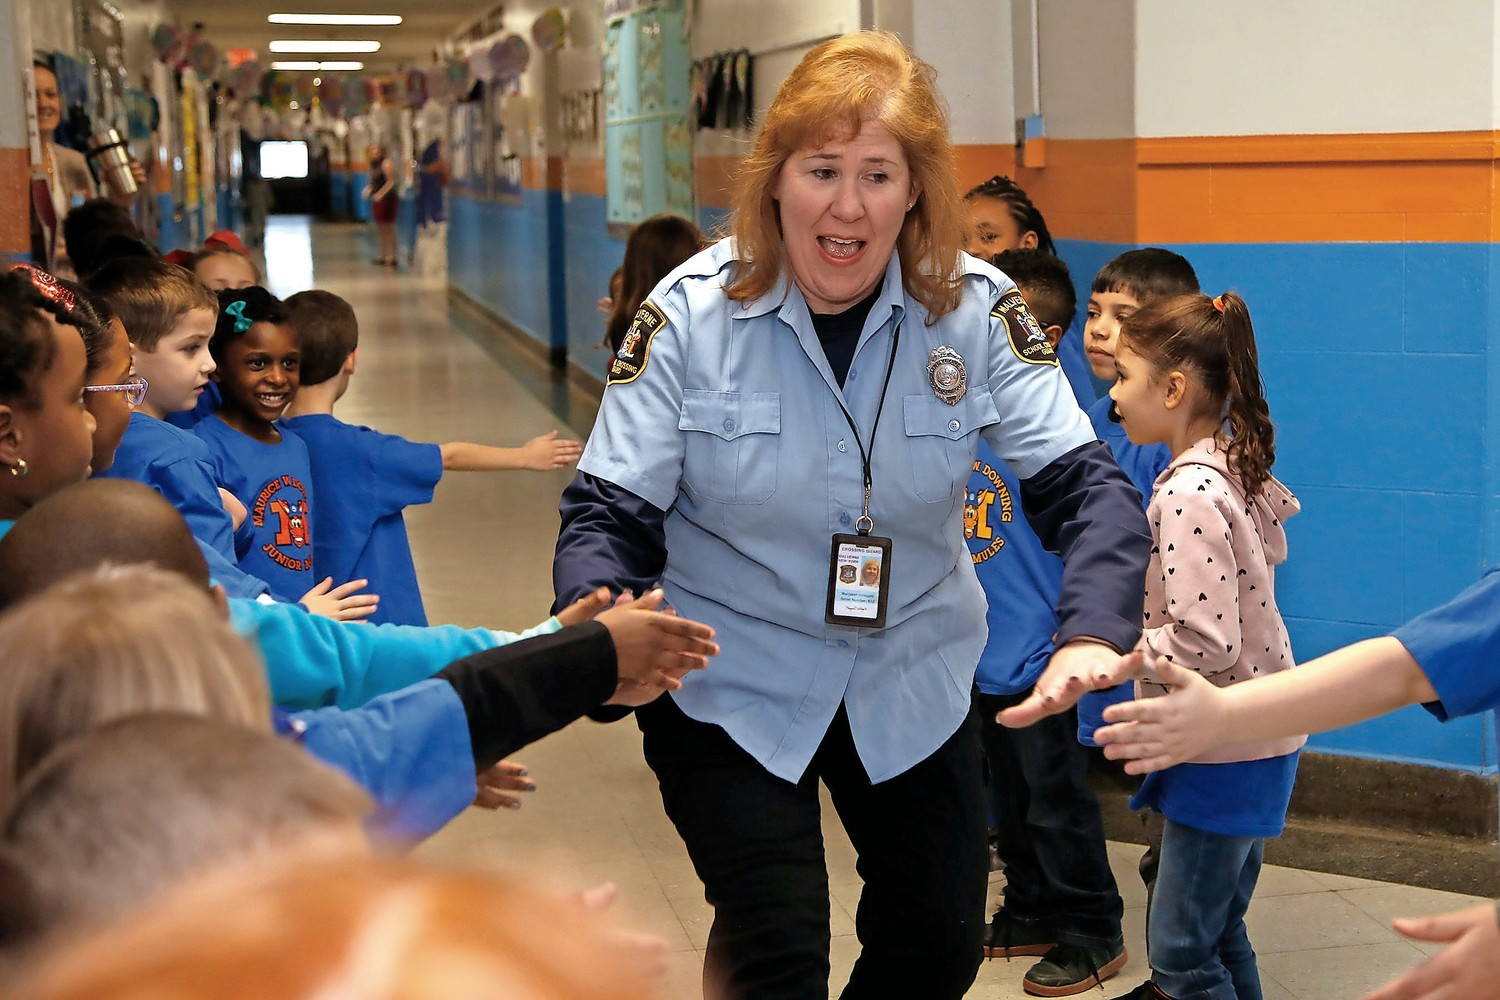 Crossing Guard Margaret Delligatti greeted students at the celebration.